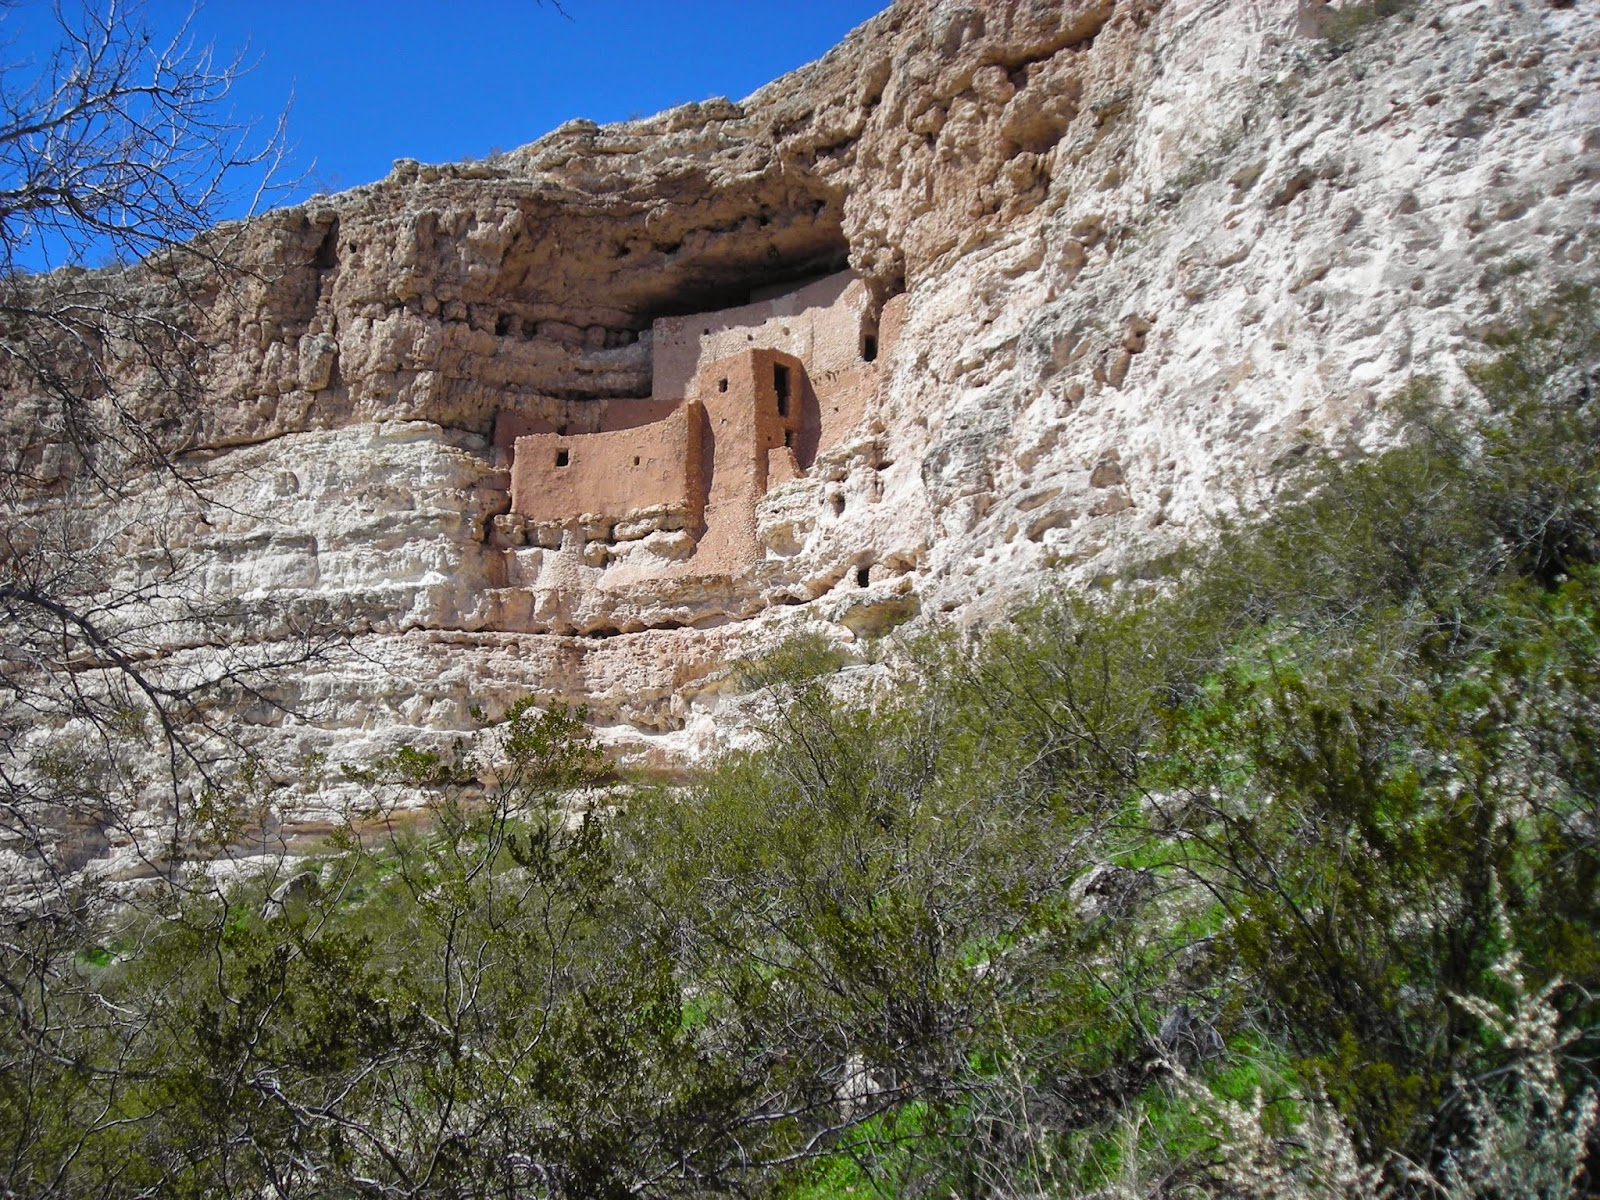 Montezuma Castle, Arizona, now abandoned